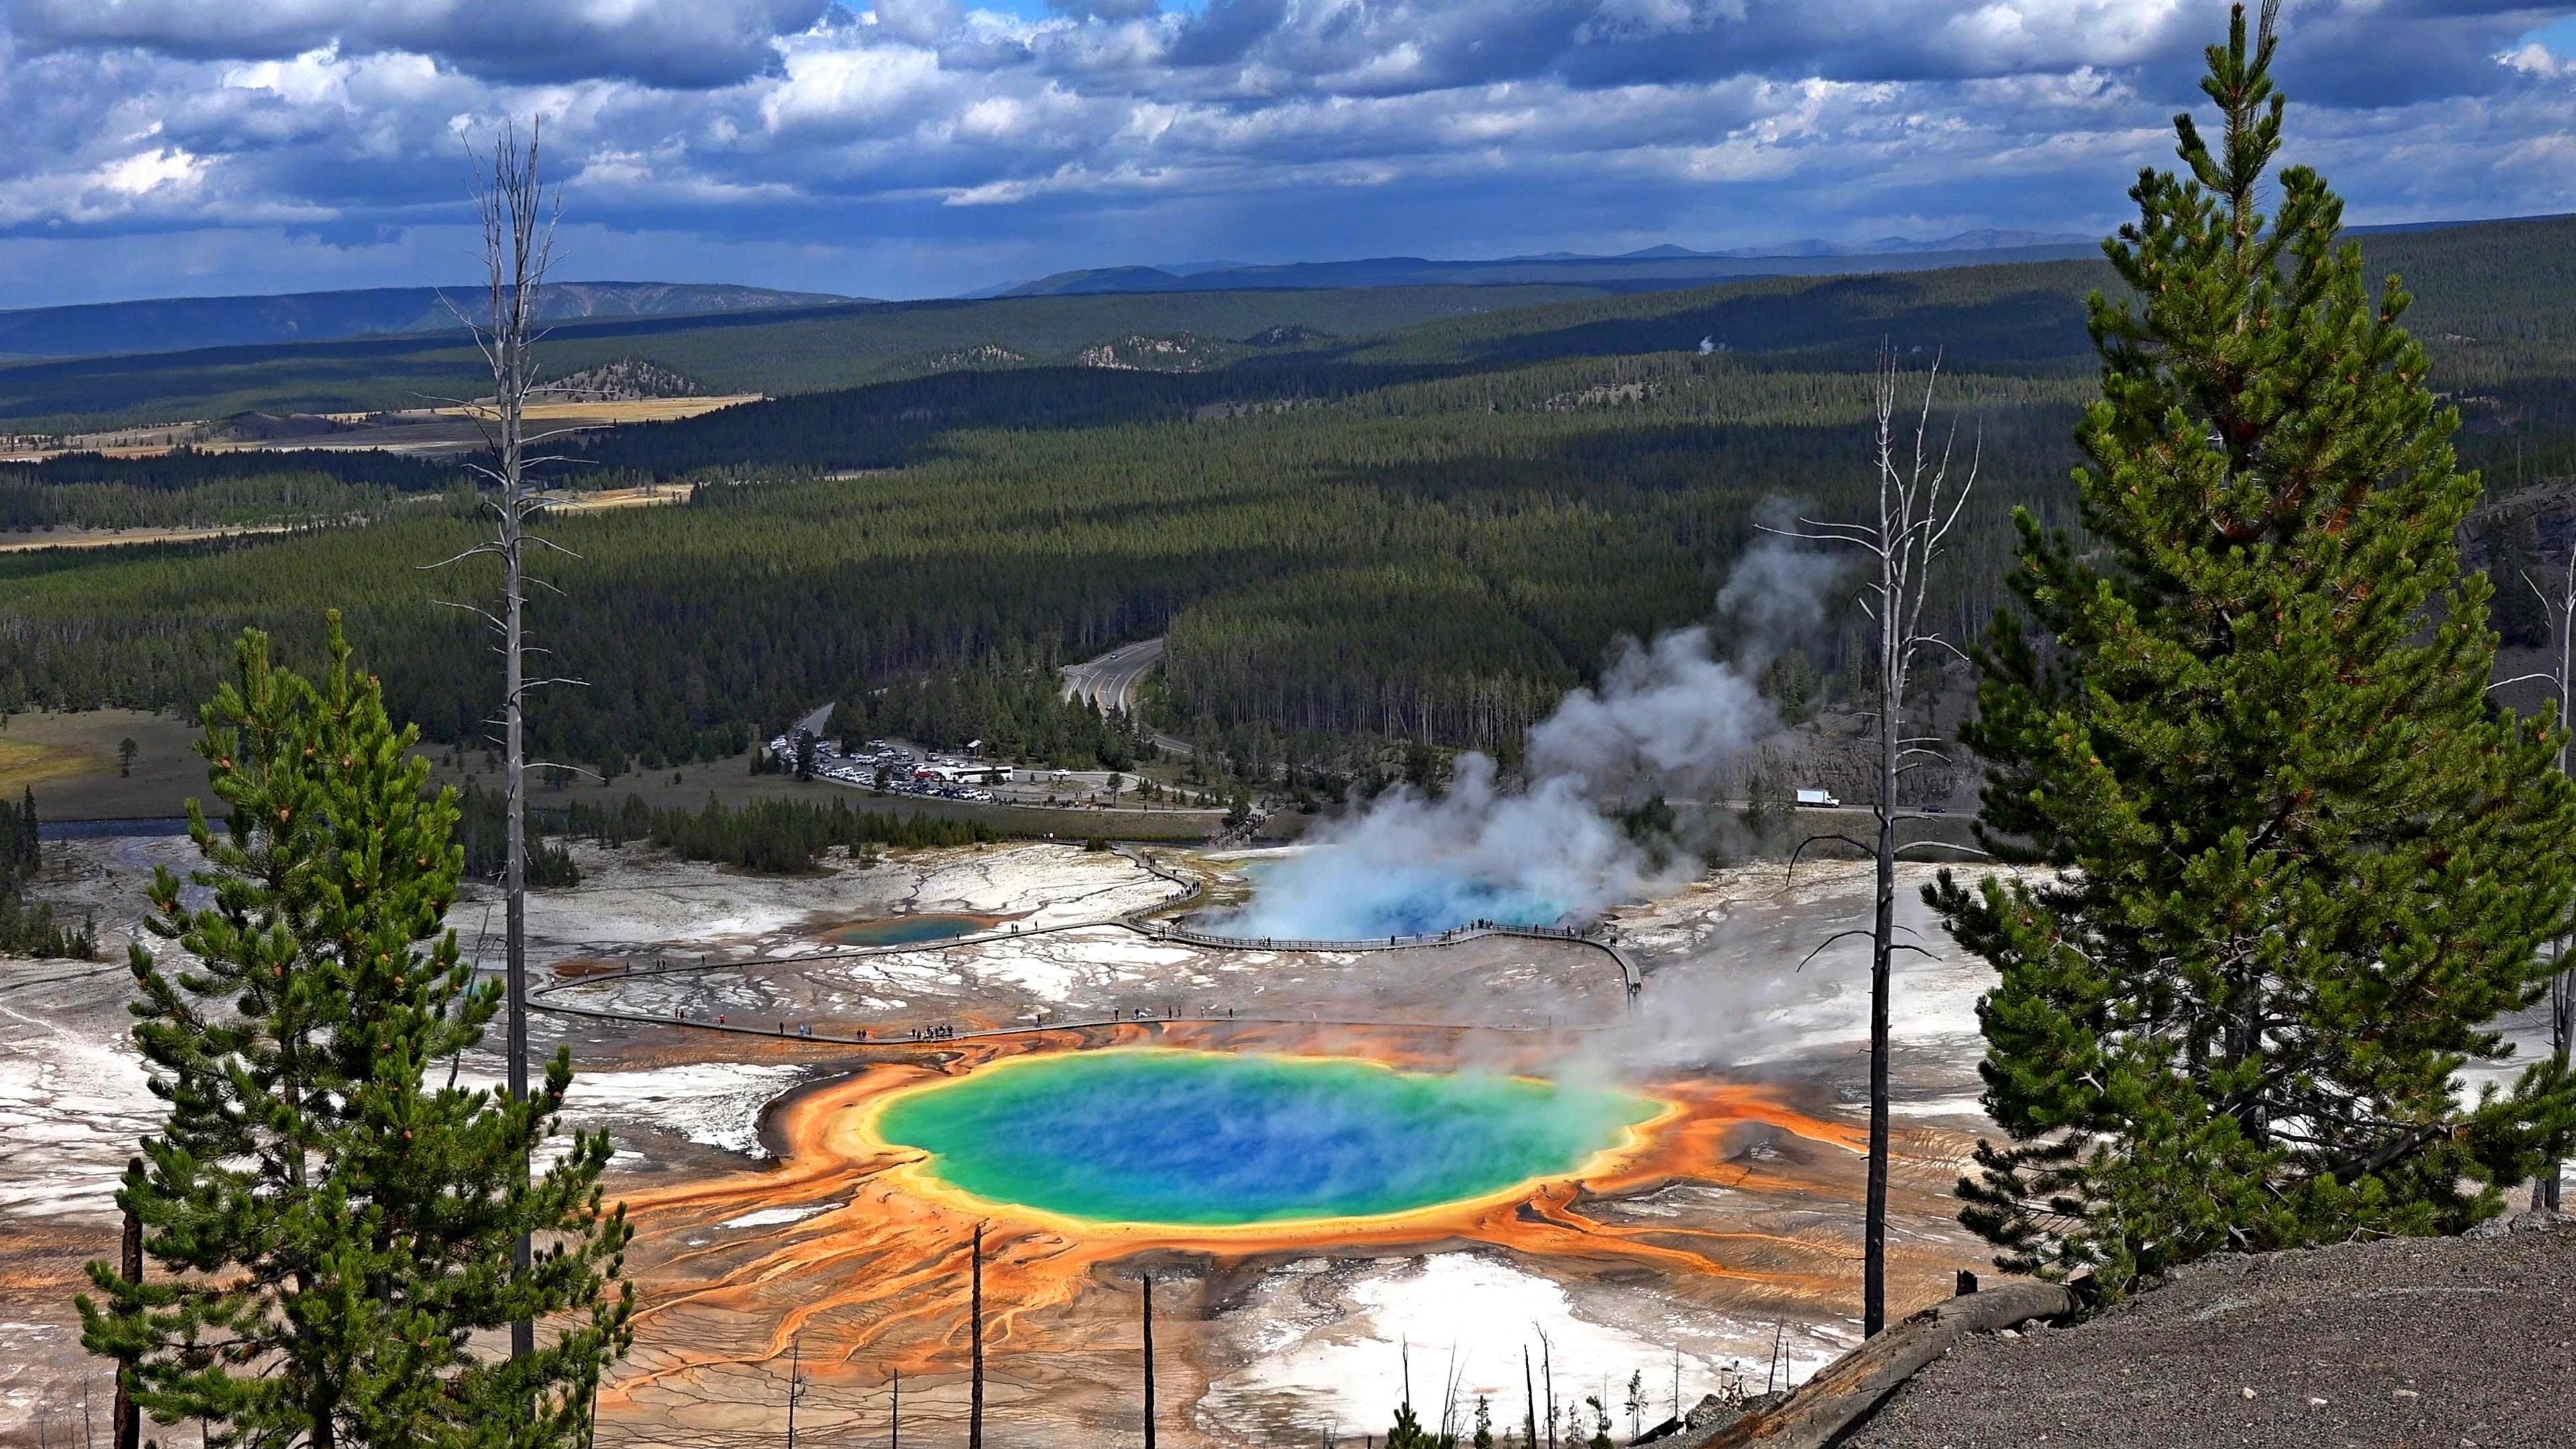 Yellowstone National Park - USA's Oldest National Park